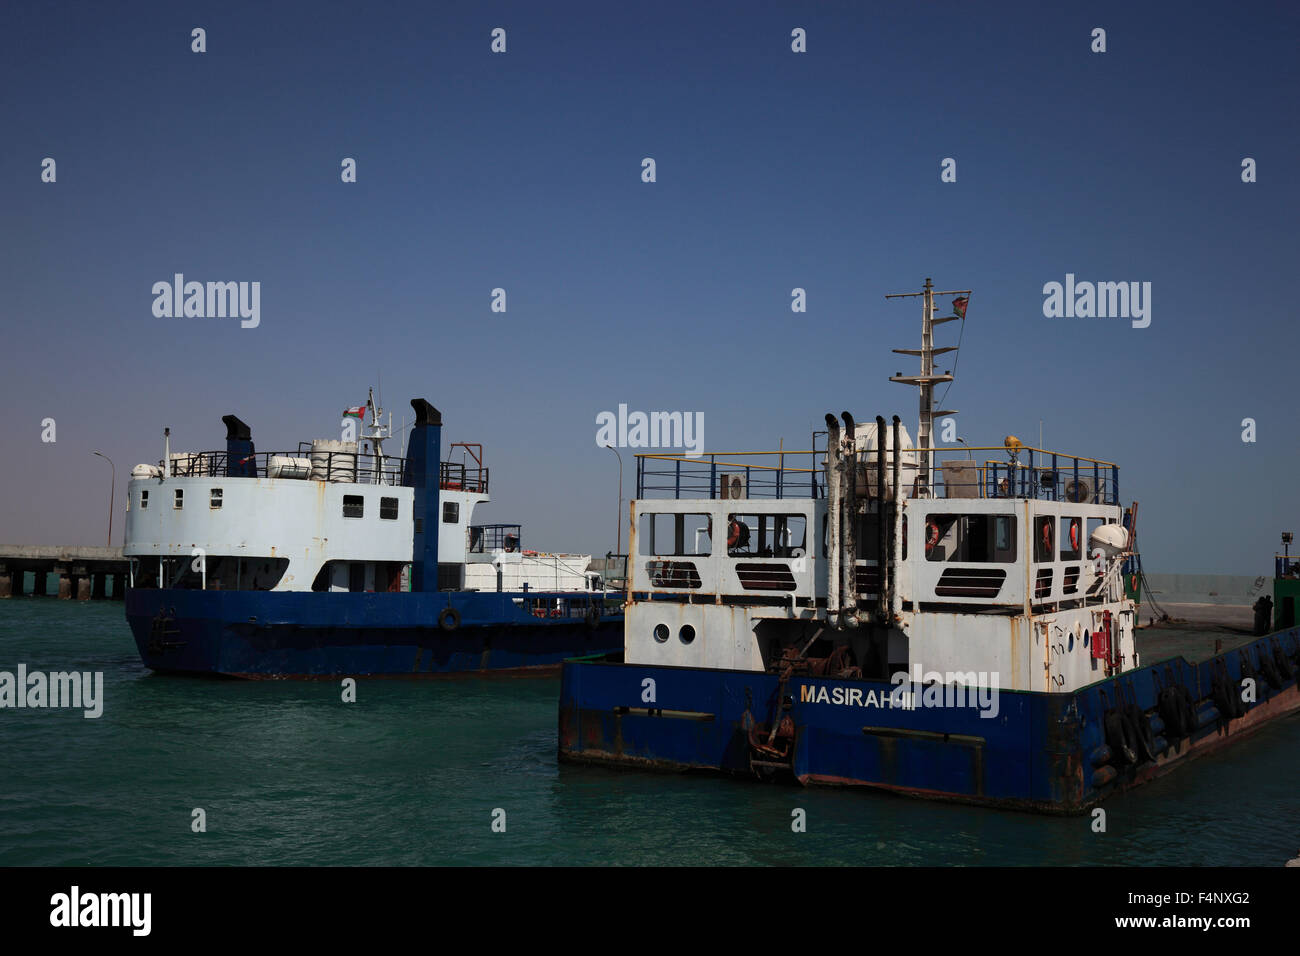 Ferryboats with Al-Ayjah with Sur, Oman - Stock Image